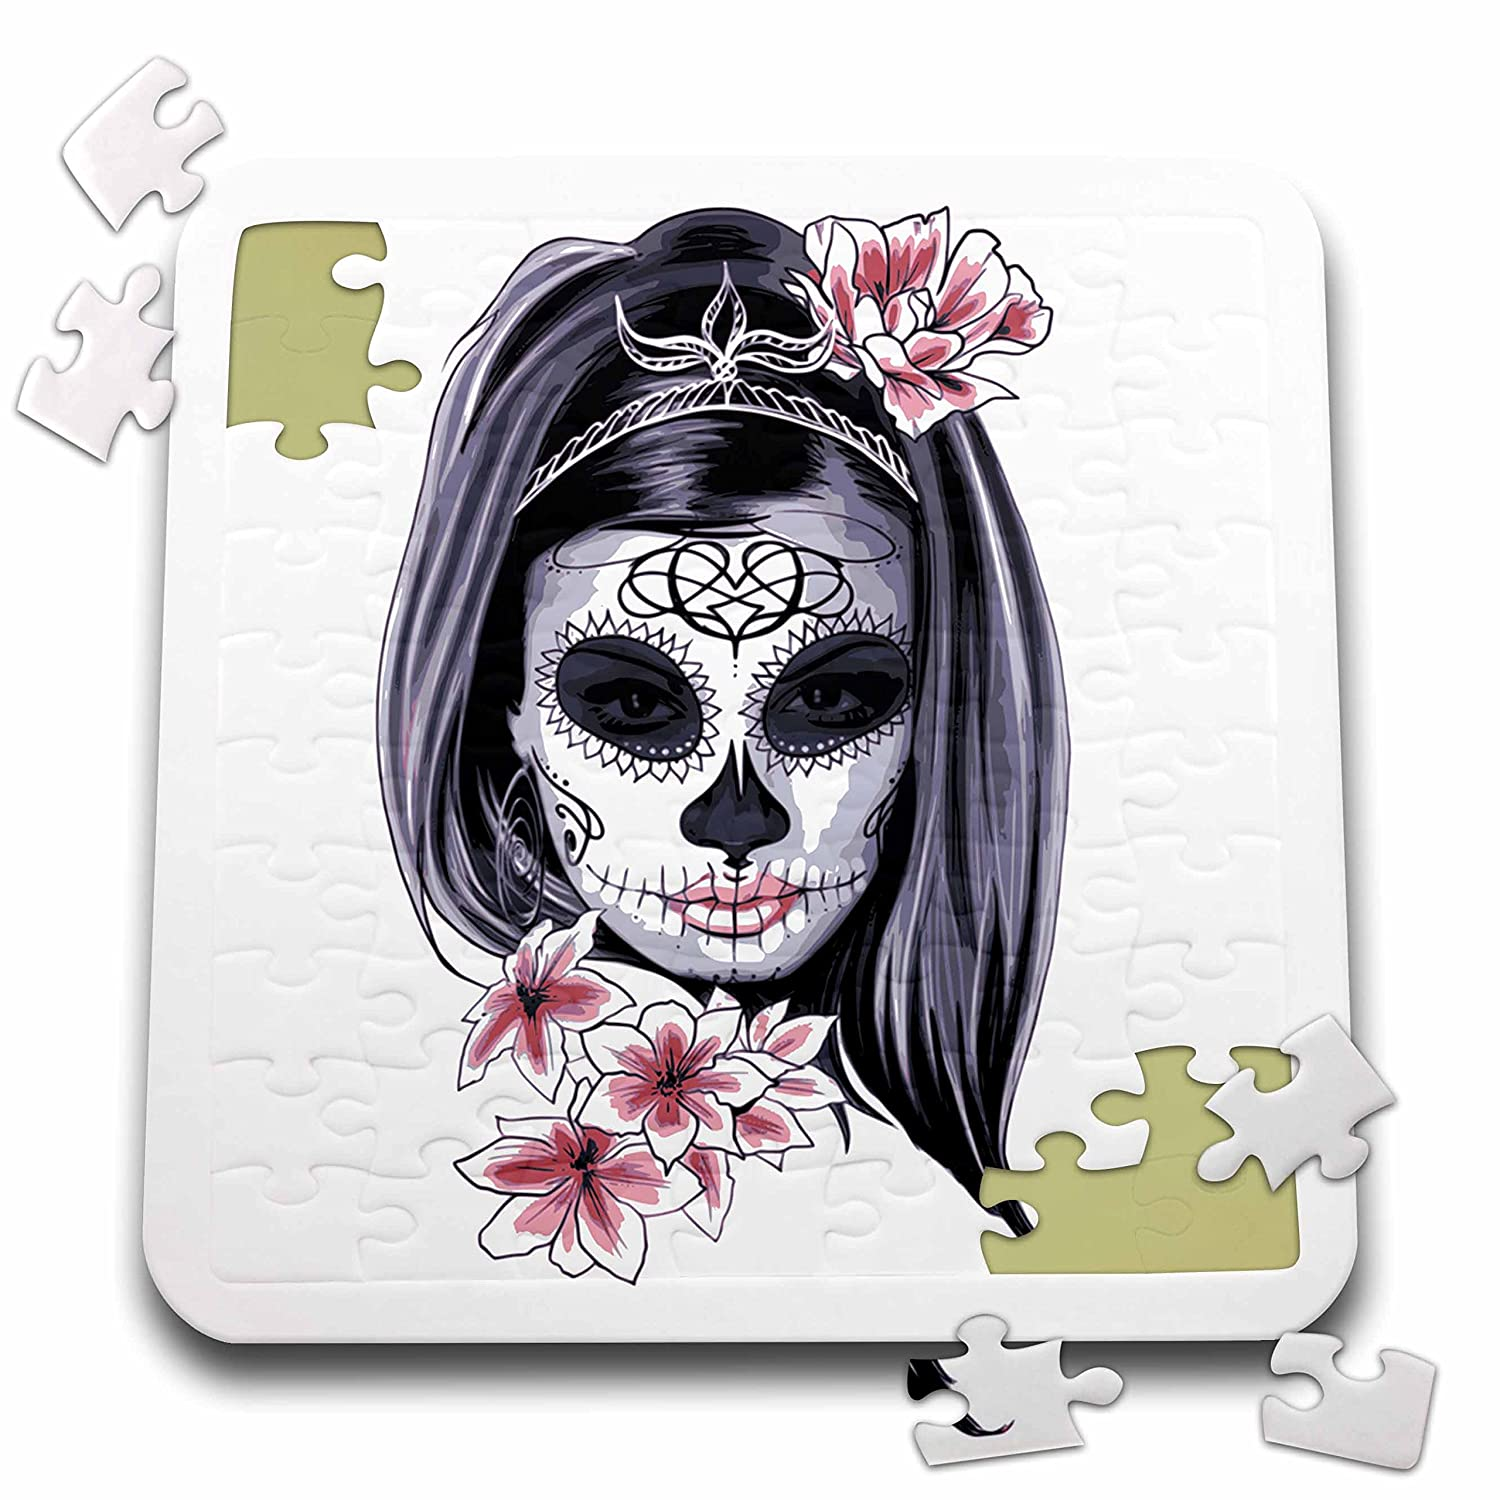 Sven Herkenrath Skull - Female Skull with pink Flowers in Hair Black White Gothic Day of the Dead - 10x10 Inch Puzzle (pzl_254366_2)